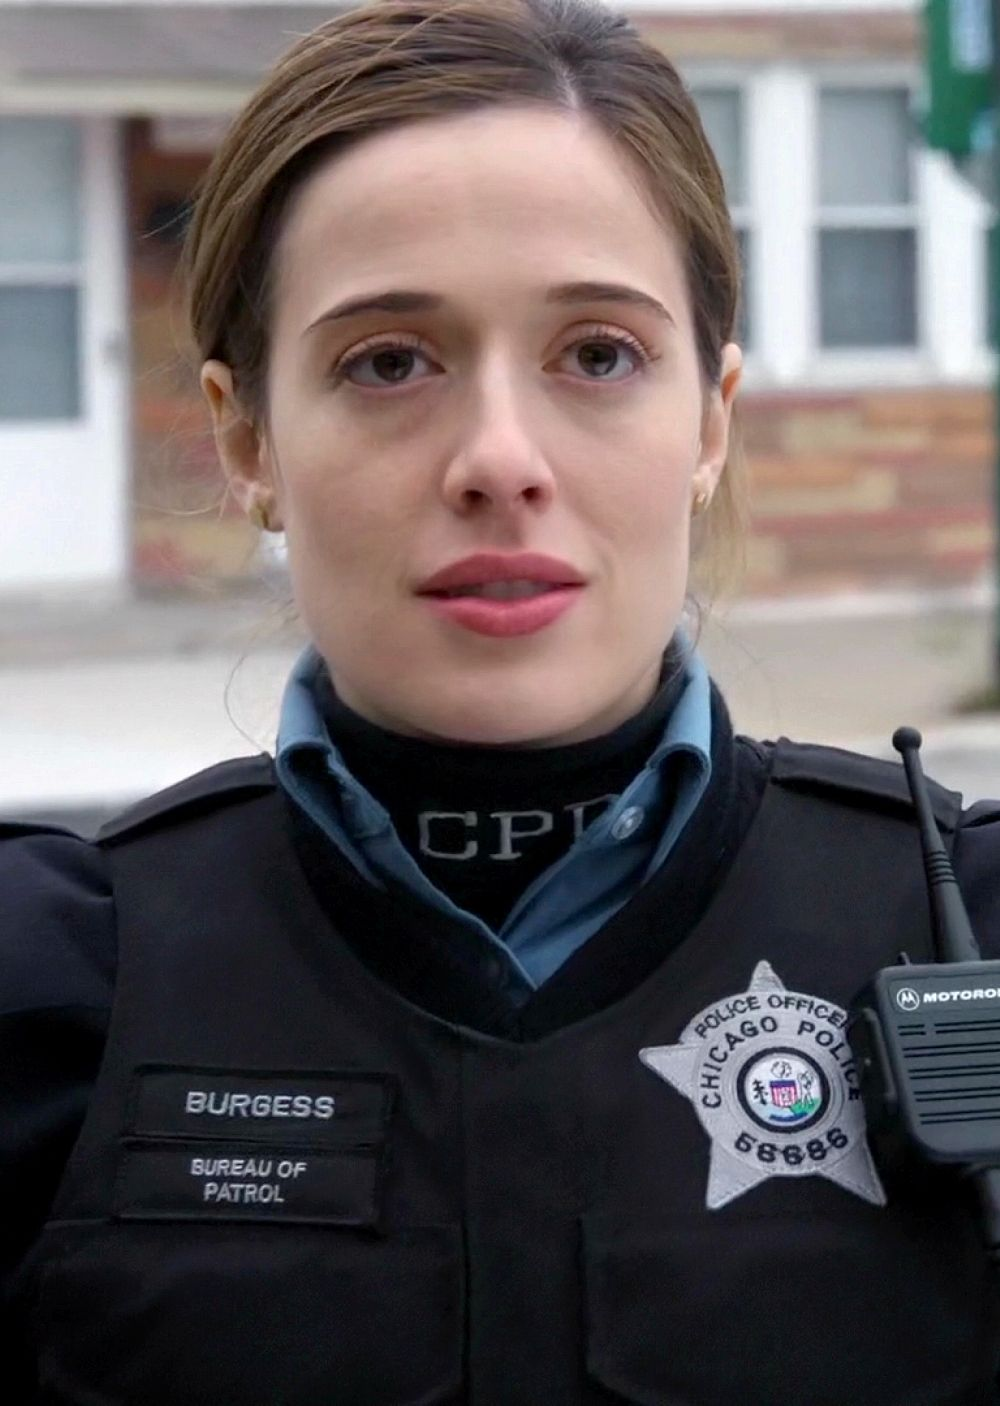 Chicago pd burgess dating